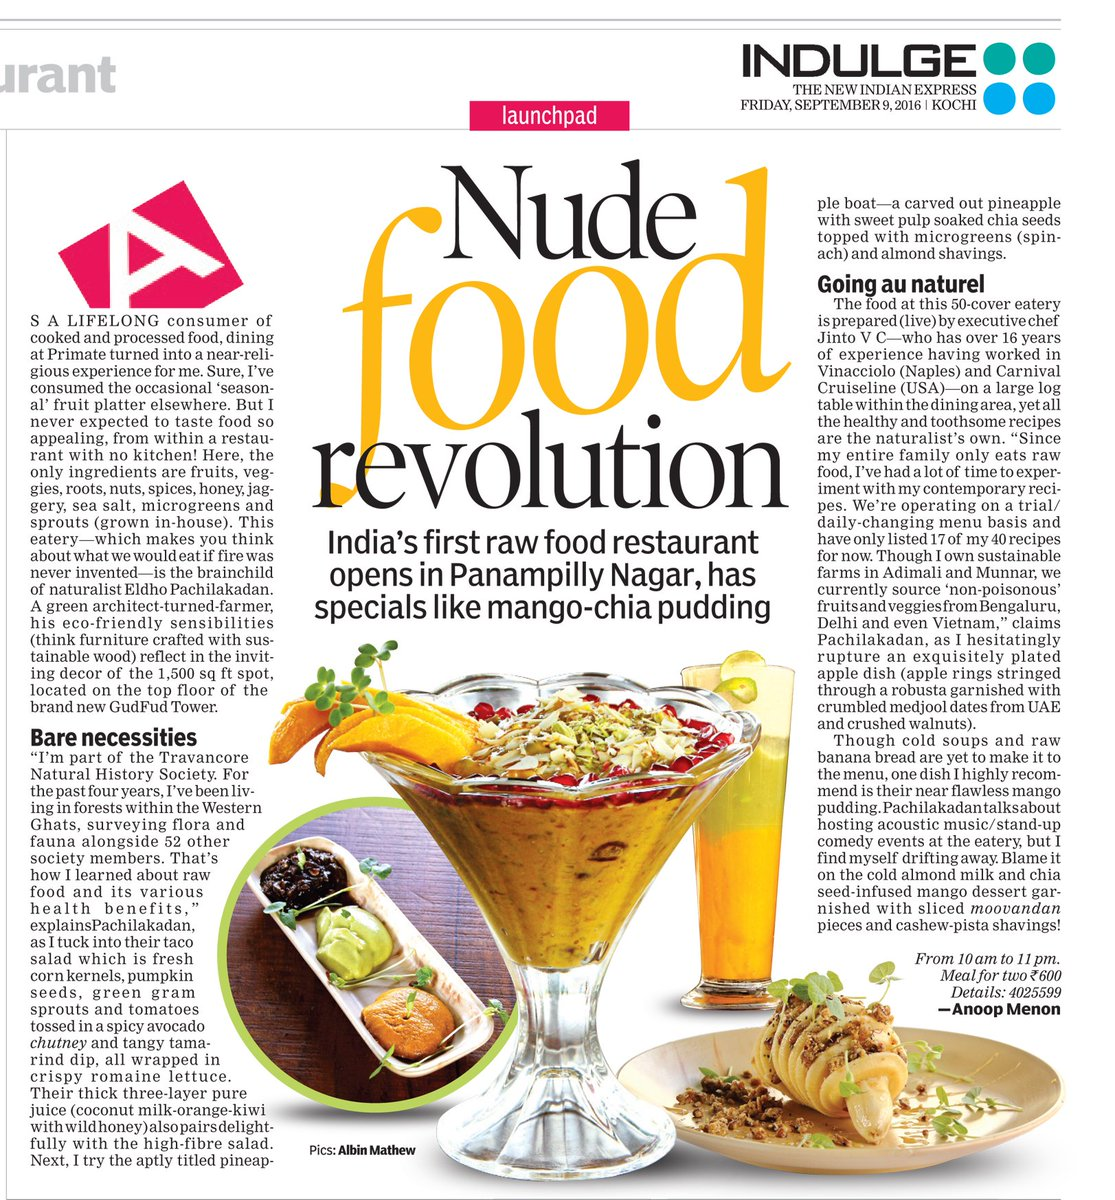 What would we eat if Fire was never invented?Head to Primate—India's first raw food restaurant—for the answer #Kochi https://t.co/BIUgwIhTcm